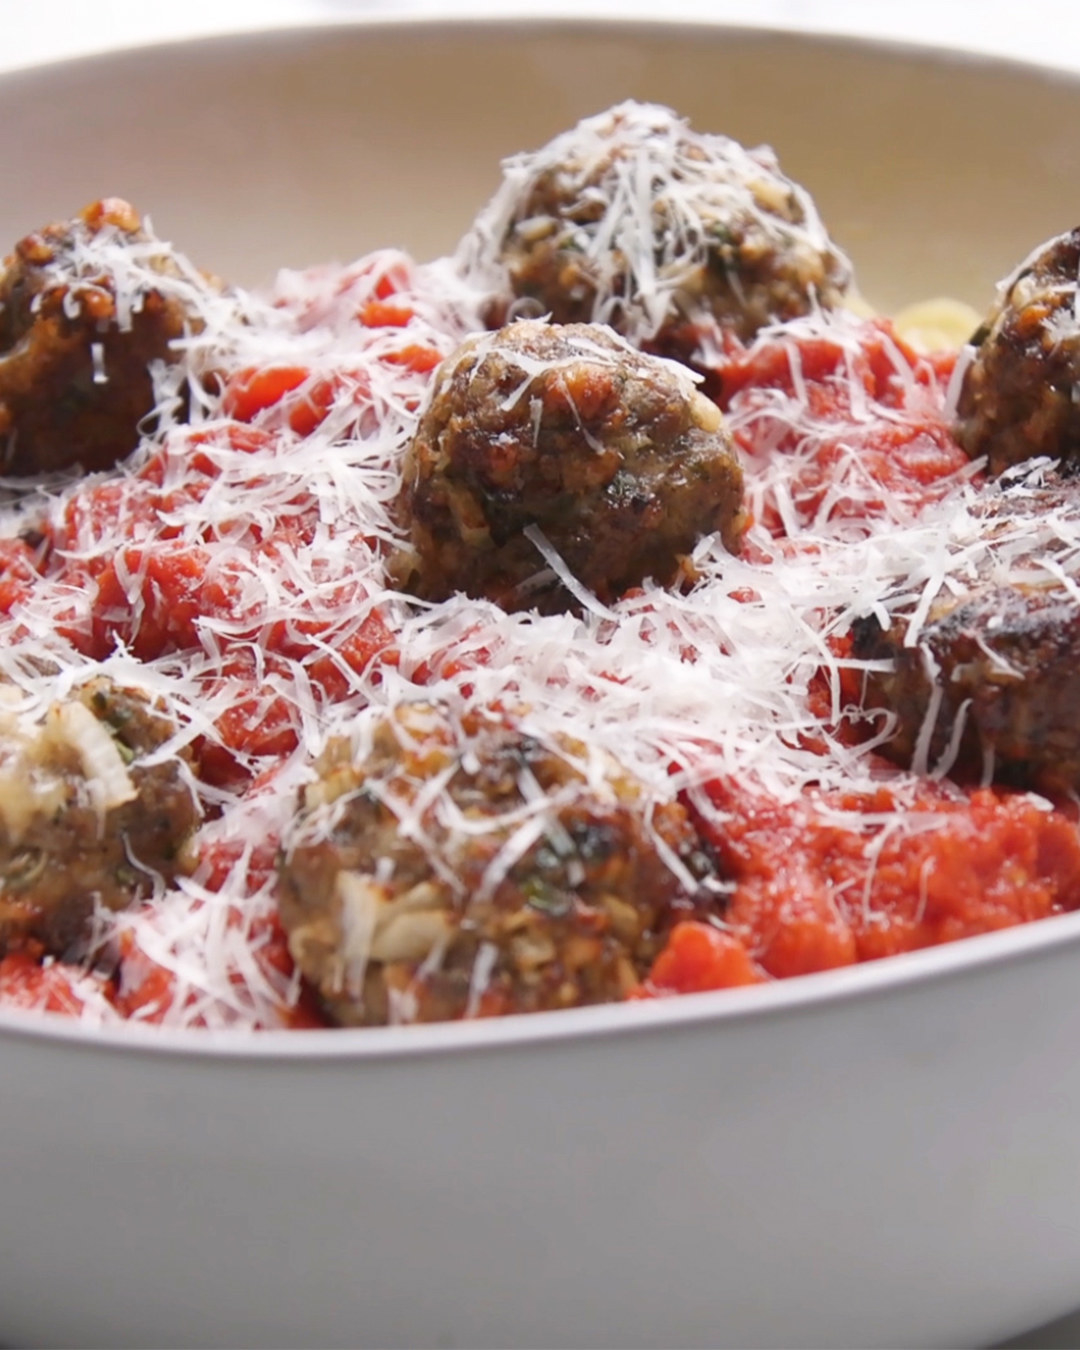 This Simple Spaghetti And Meatballs Recipe Is Perfect For Cooks Who Are Just Starting Out